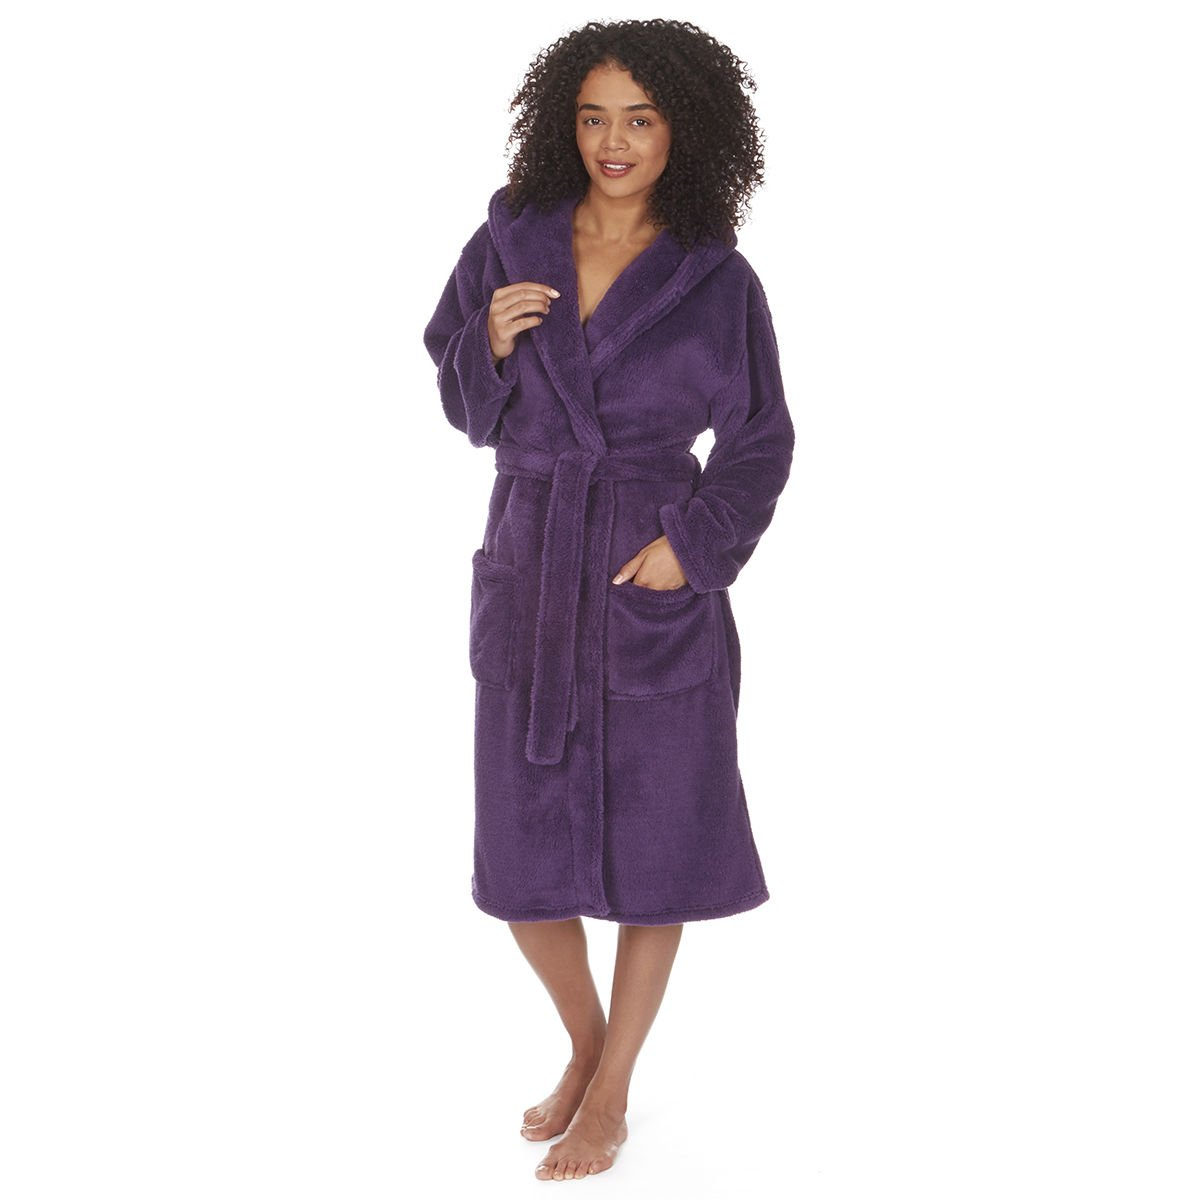 Ladies Women's Soft Flannel Fleece Hooded Snuggle Dressing Gown Robe Nightwear Forever Dreaming